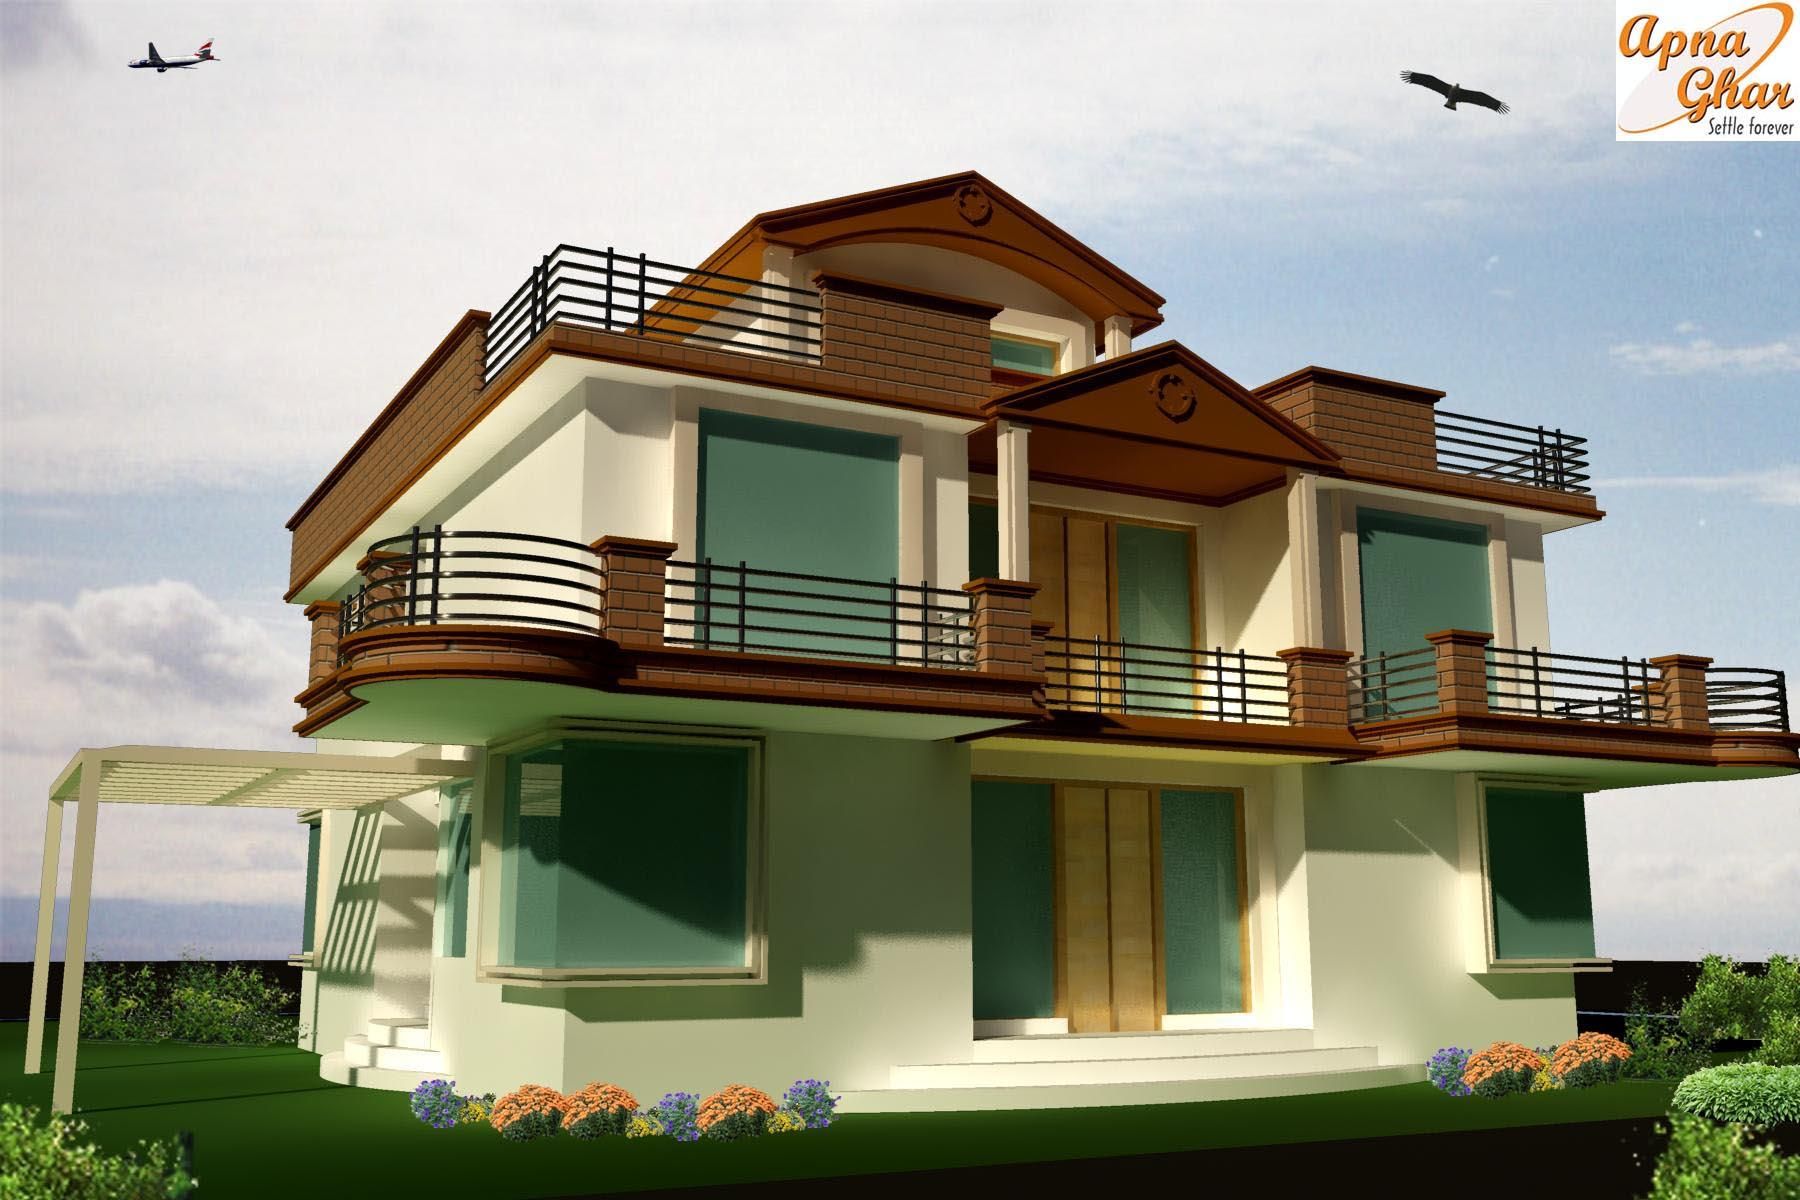 Beautiful home front elevation designs and ideas home design decorating remodeling ideas New ideas in home design